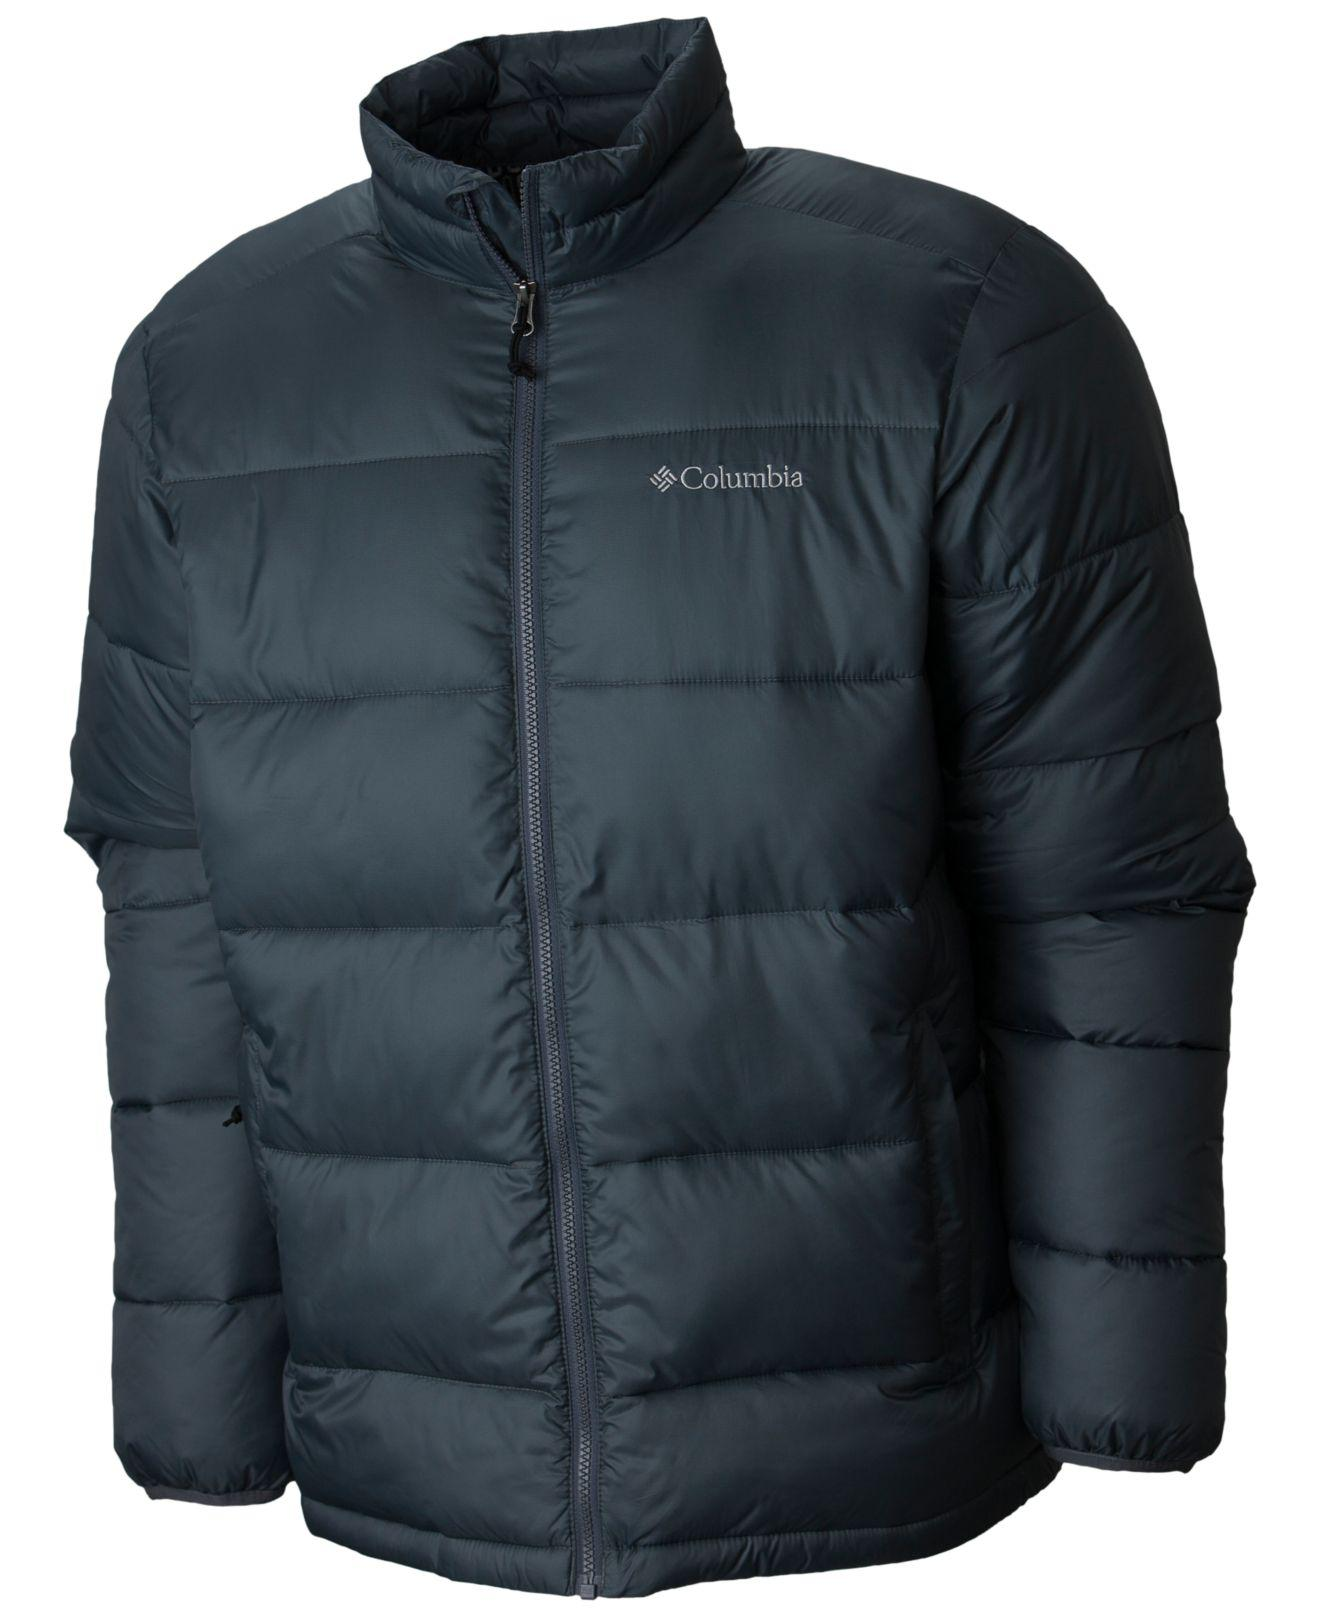 Columbia Synthetic Rapid Excursion Thermal Coil Jacket in Graphite (Blue) for Men - Lyst